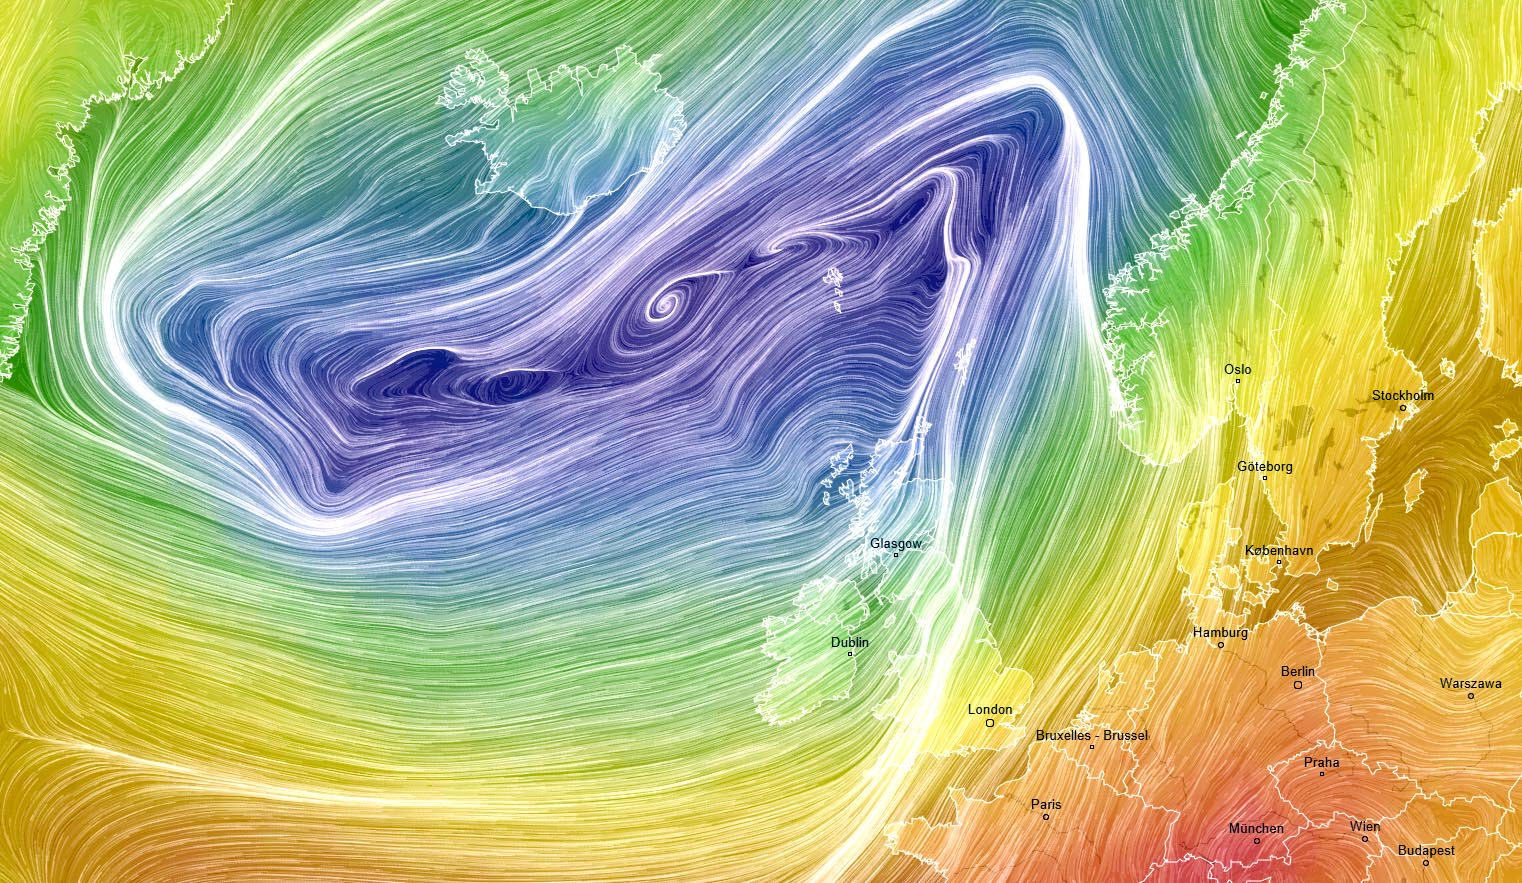 A Large Low Pressure System Is Dominating North Atlantic